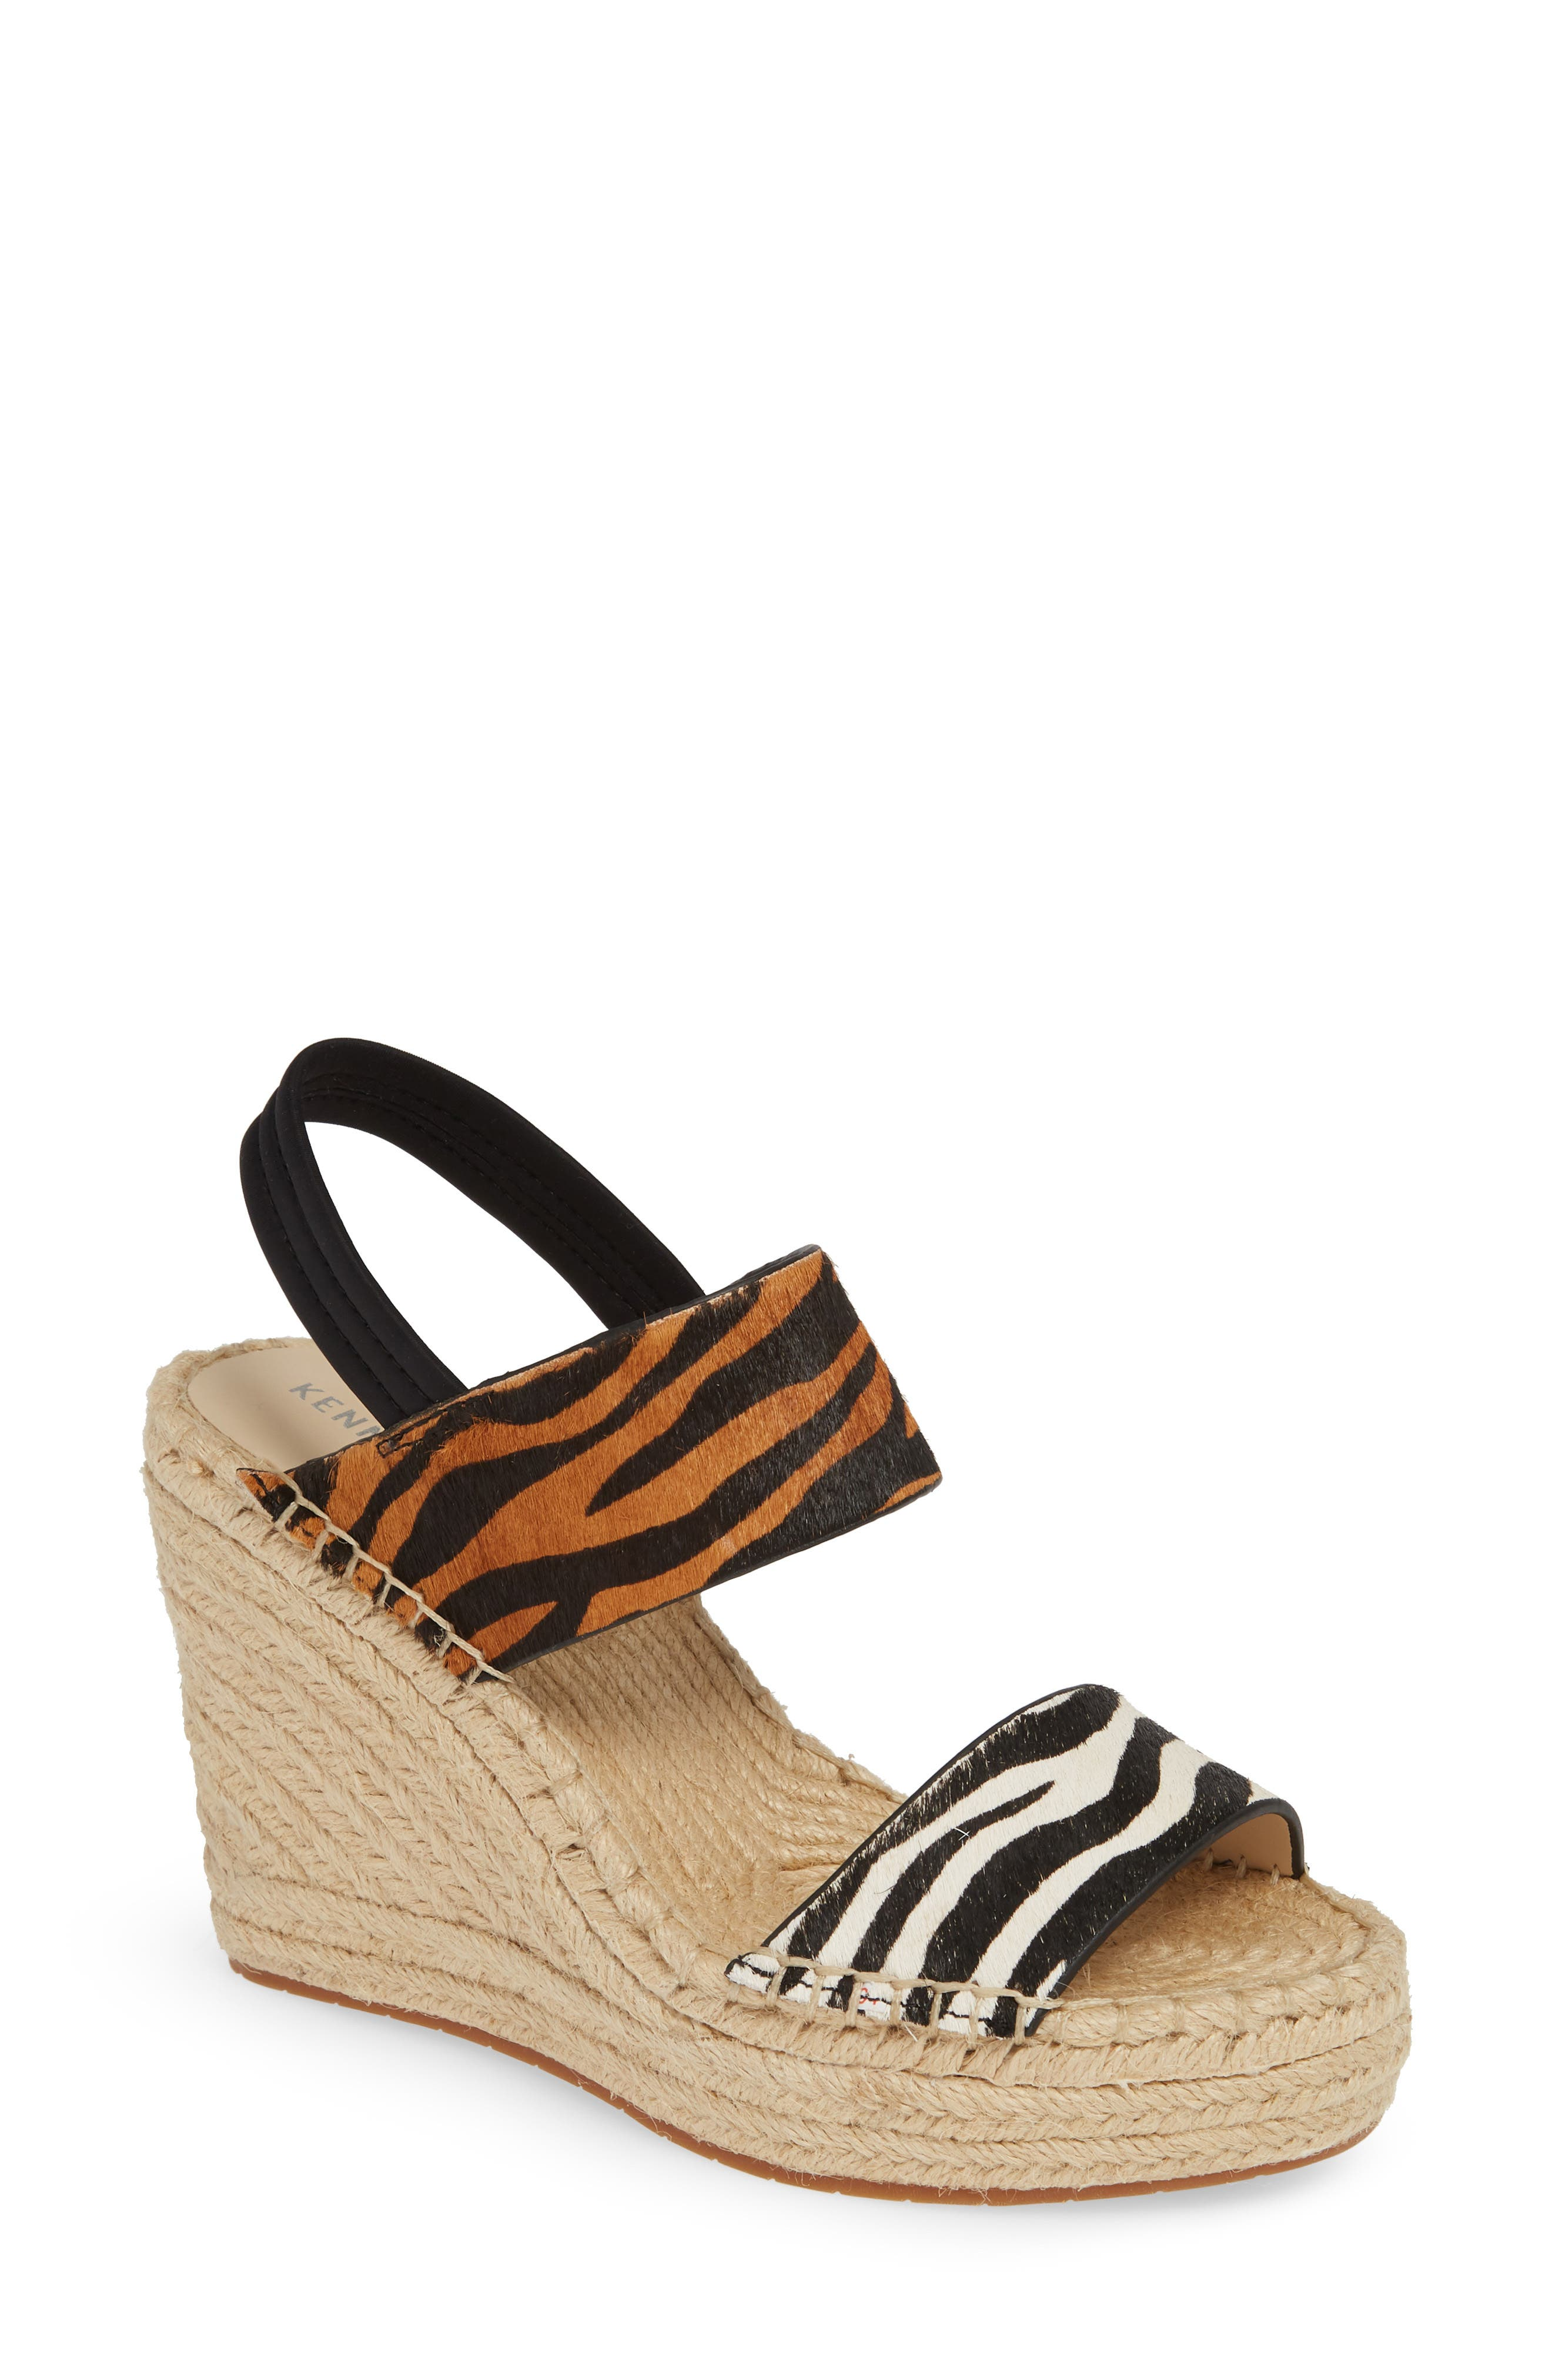 46d14db5b89 Kenneth Cole New York Wedges for Women